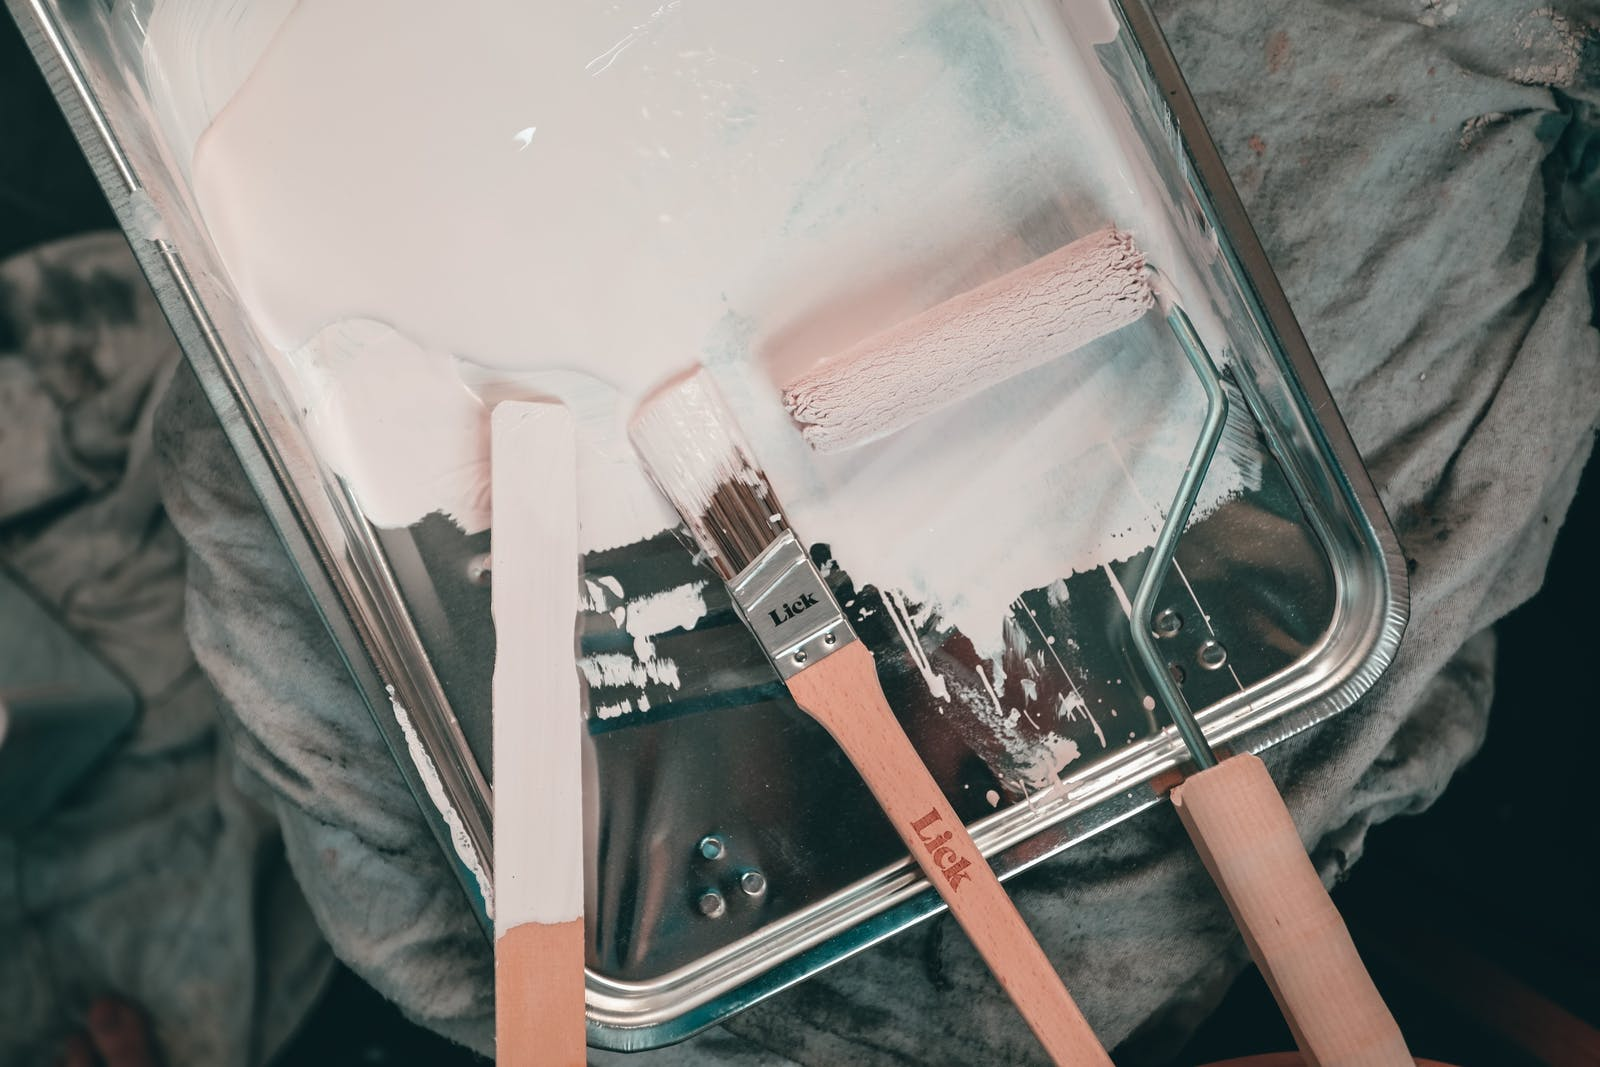 Lick paint brushes and roller on a painting tray